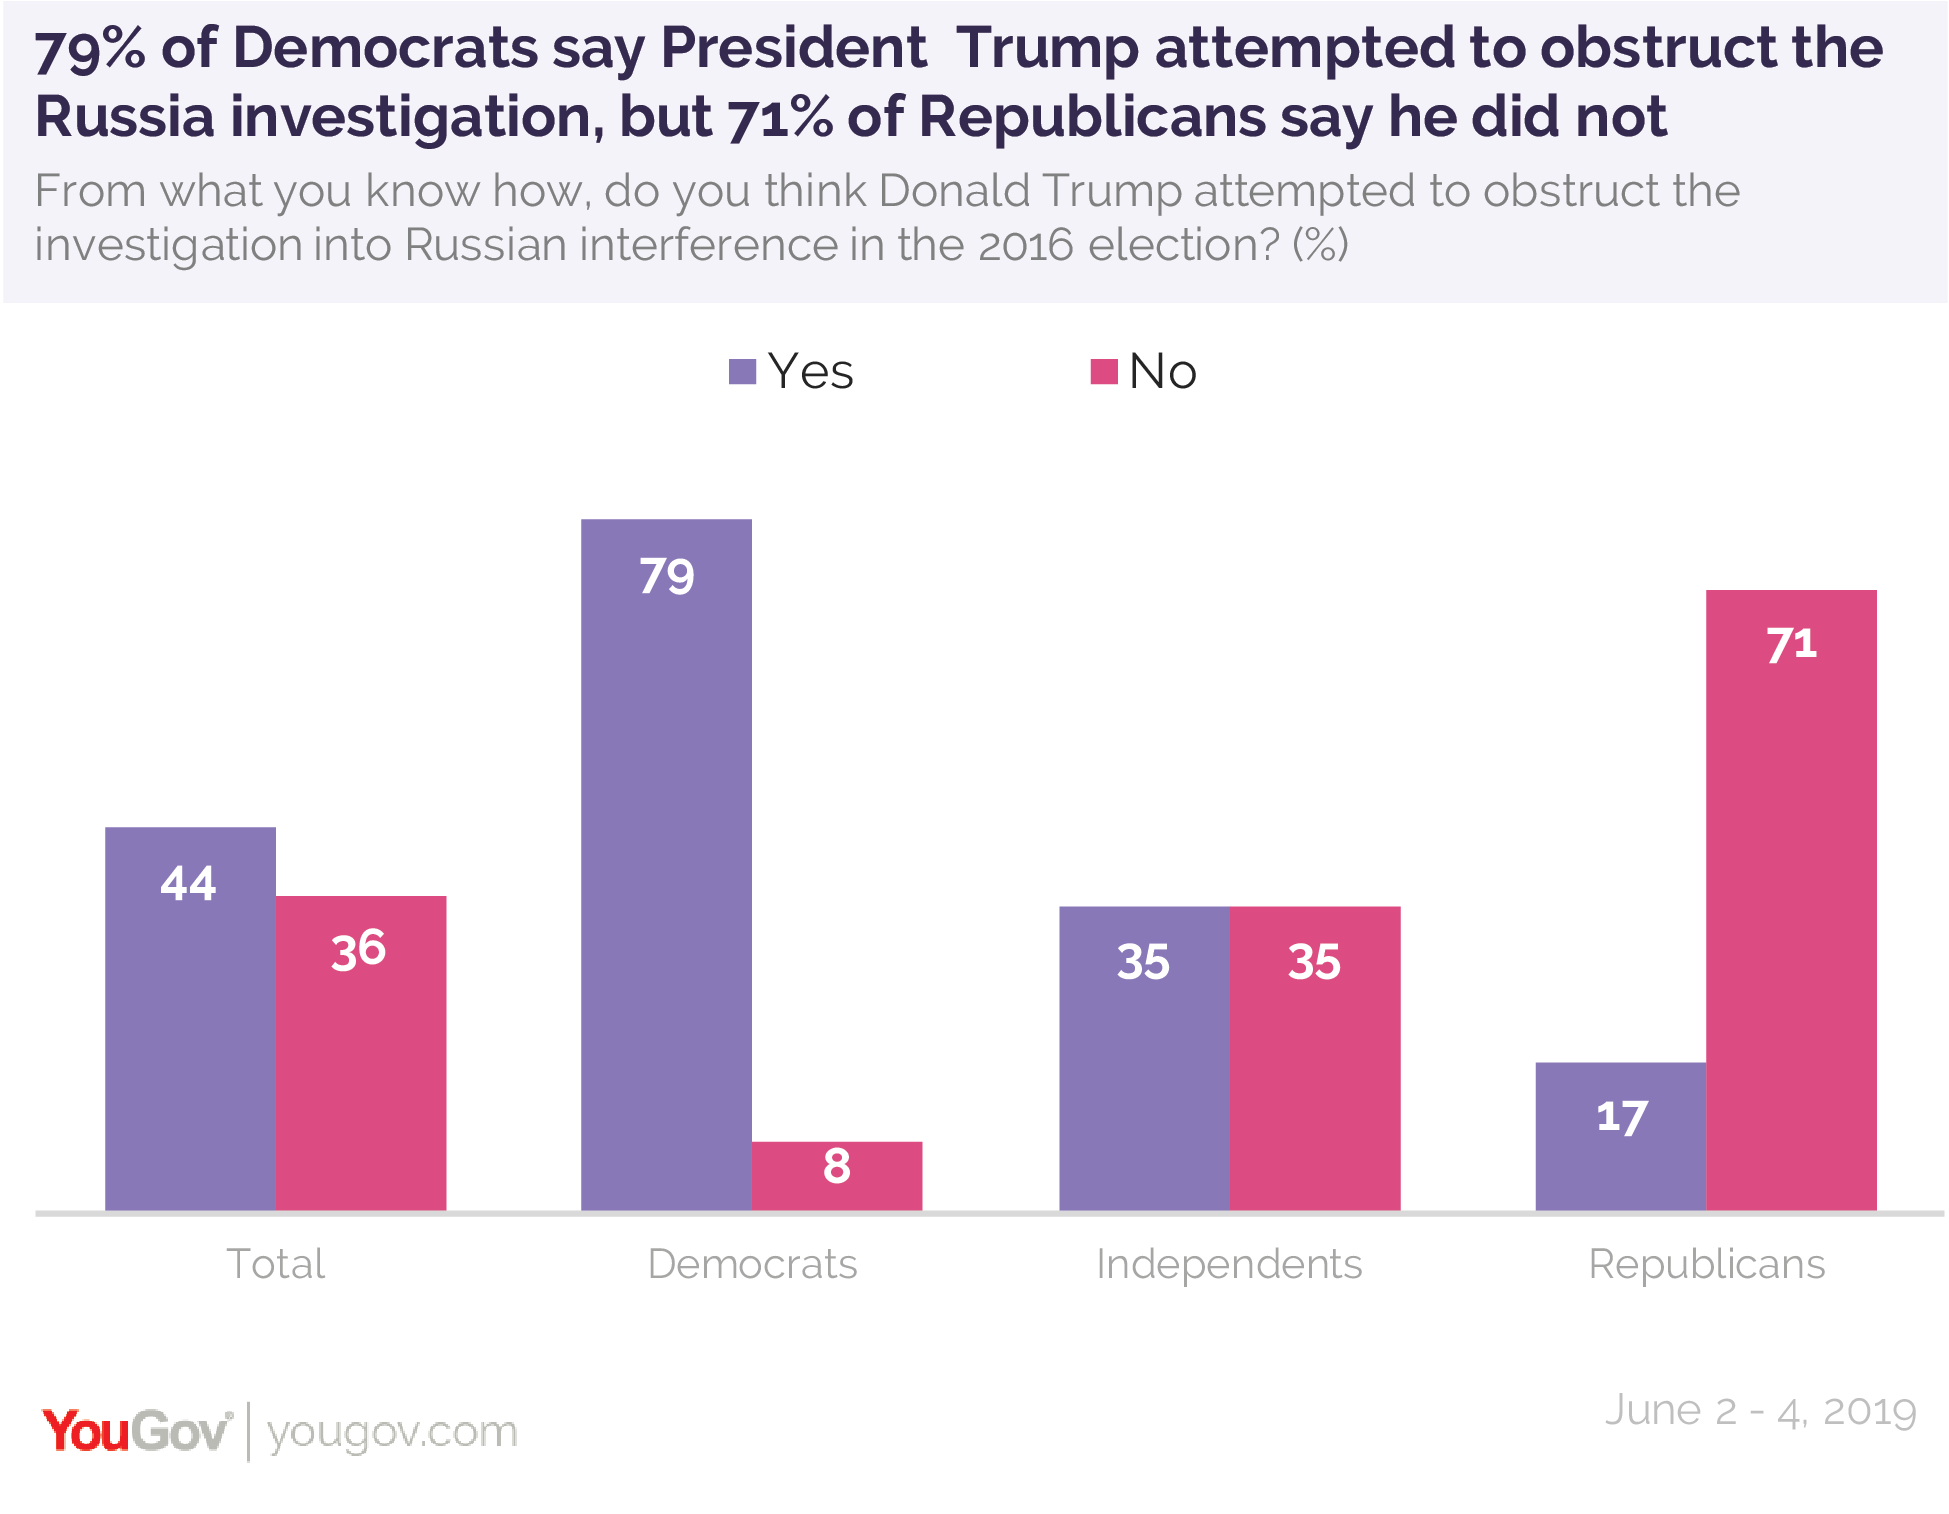 79% of Democrats say President Trump attempted to obstruct the Russia investigation, but 71% of Republicans say he did not